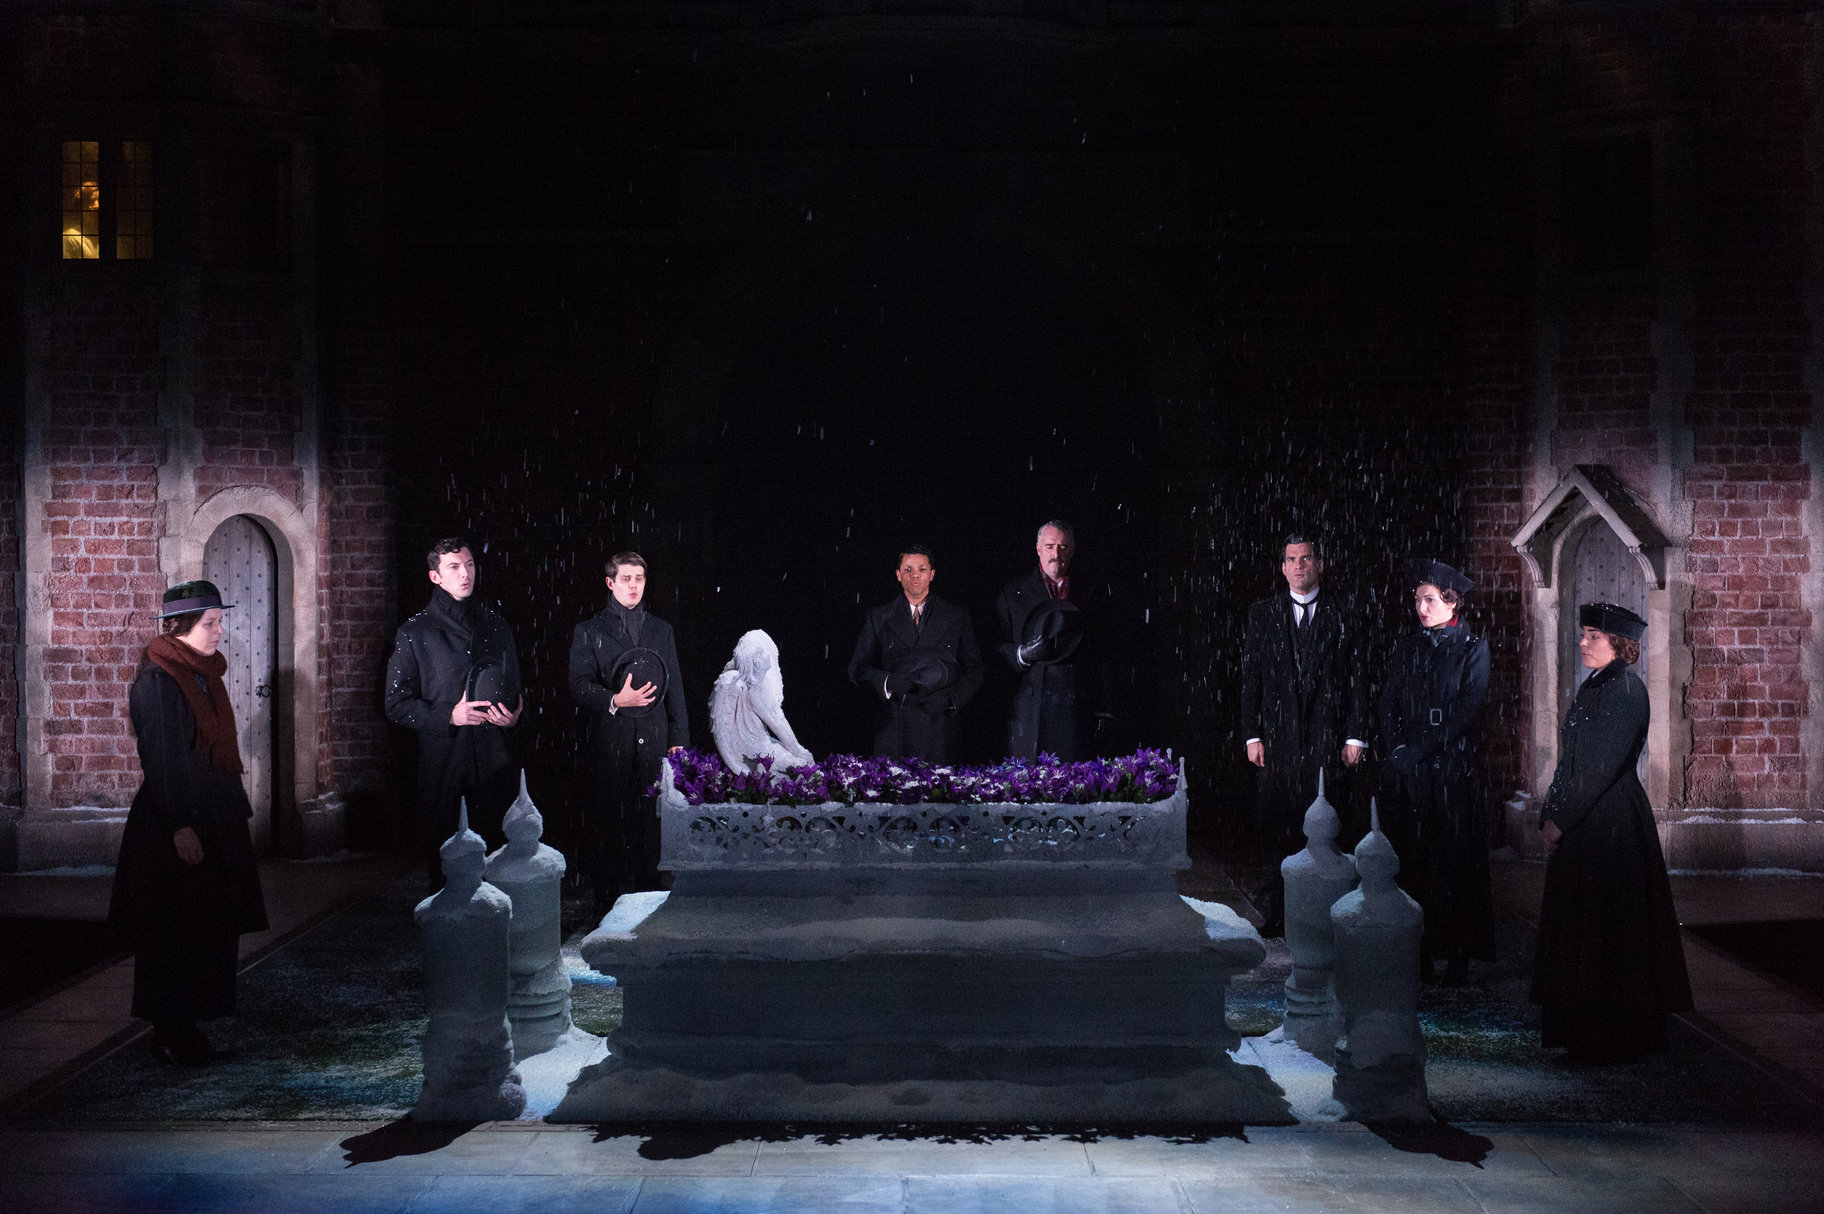 Mourners in black around a tomb.